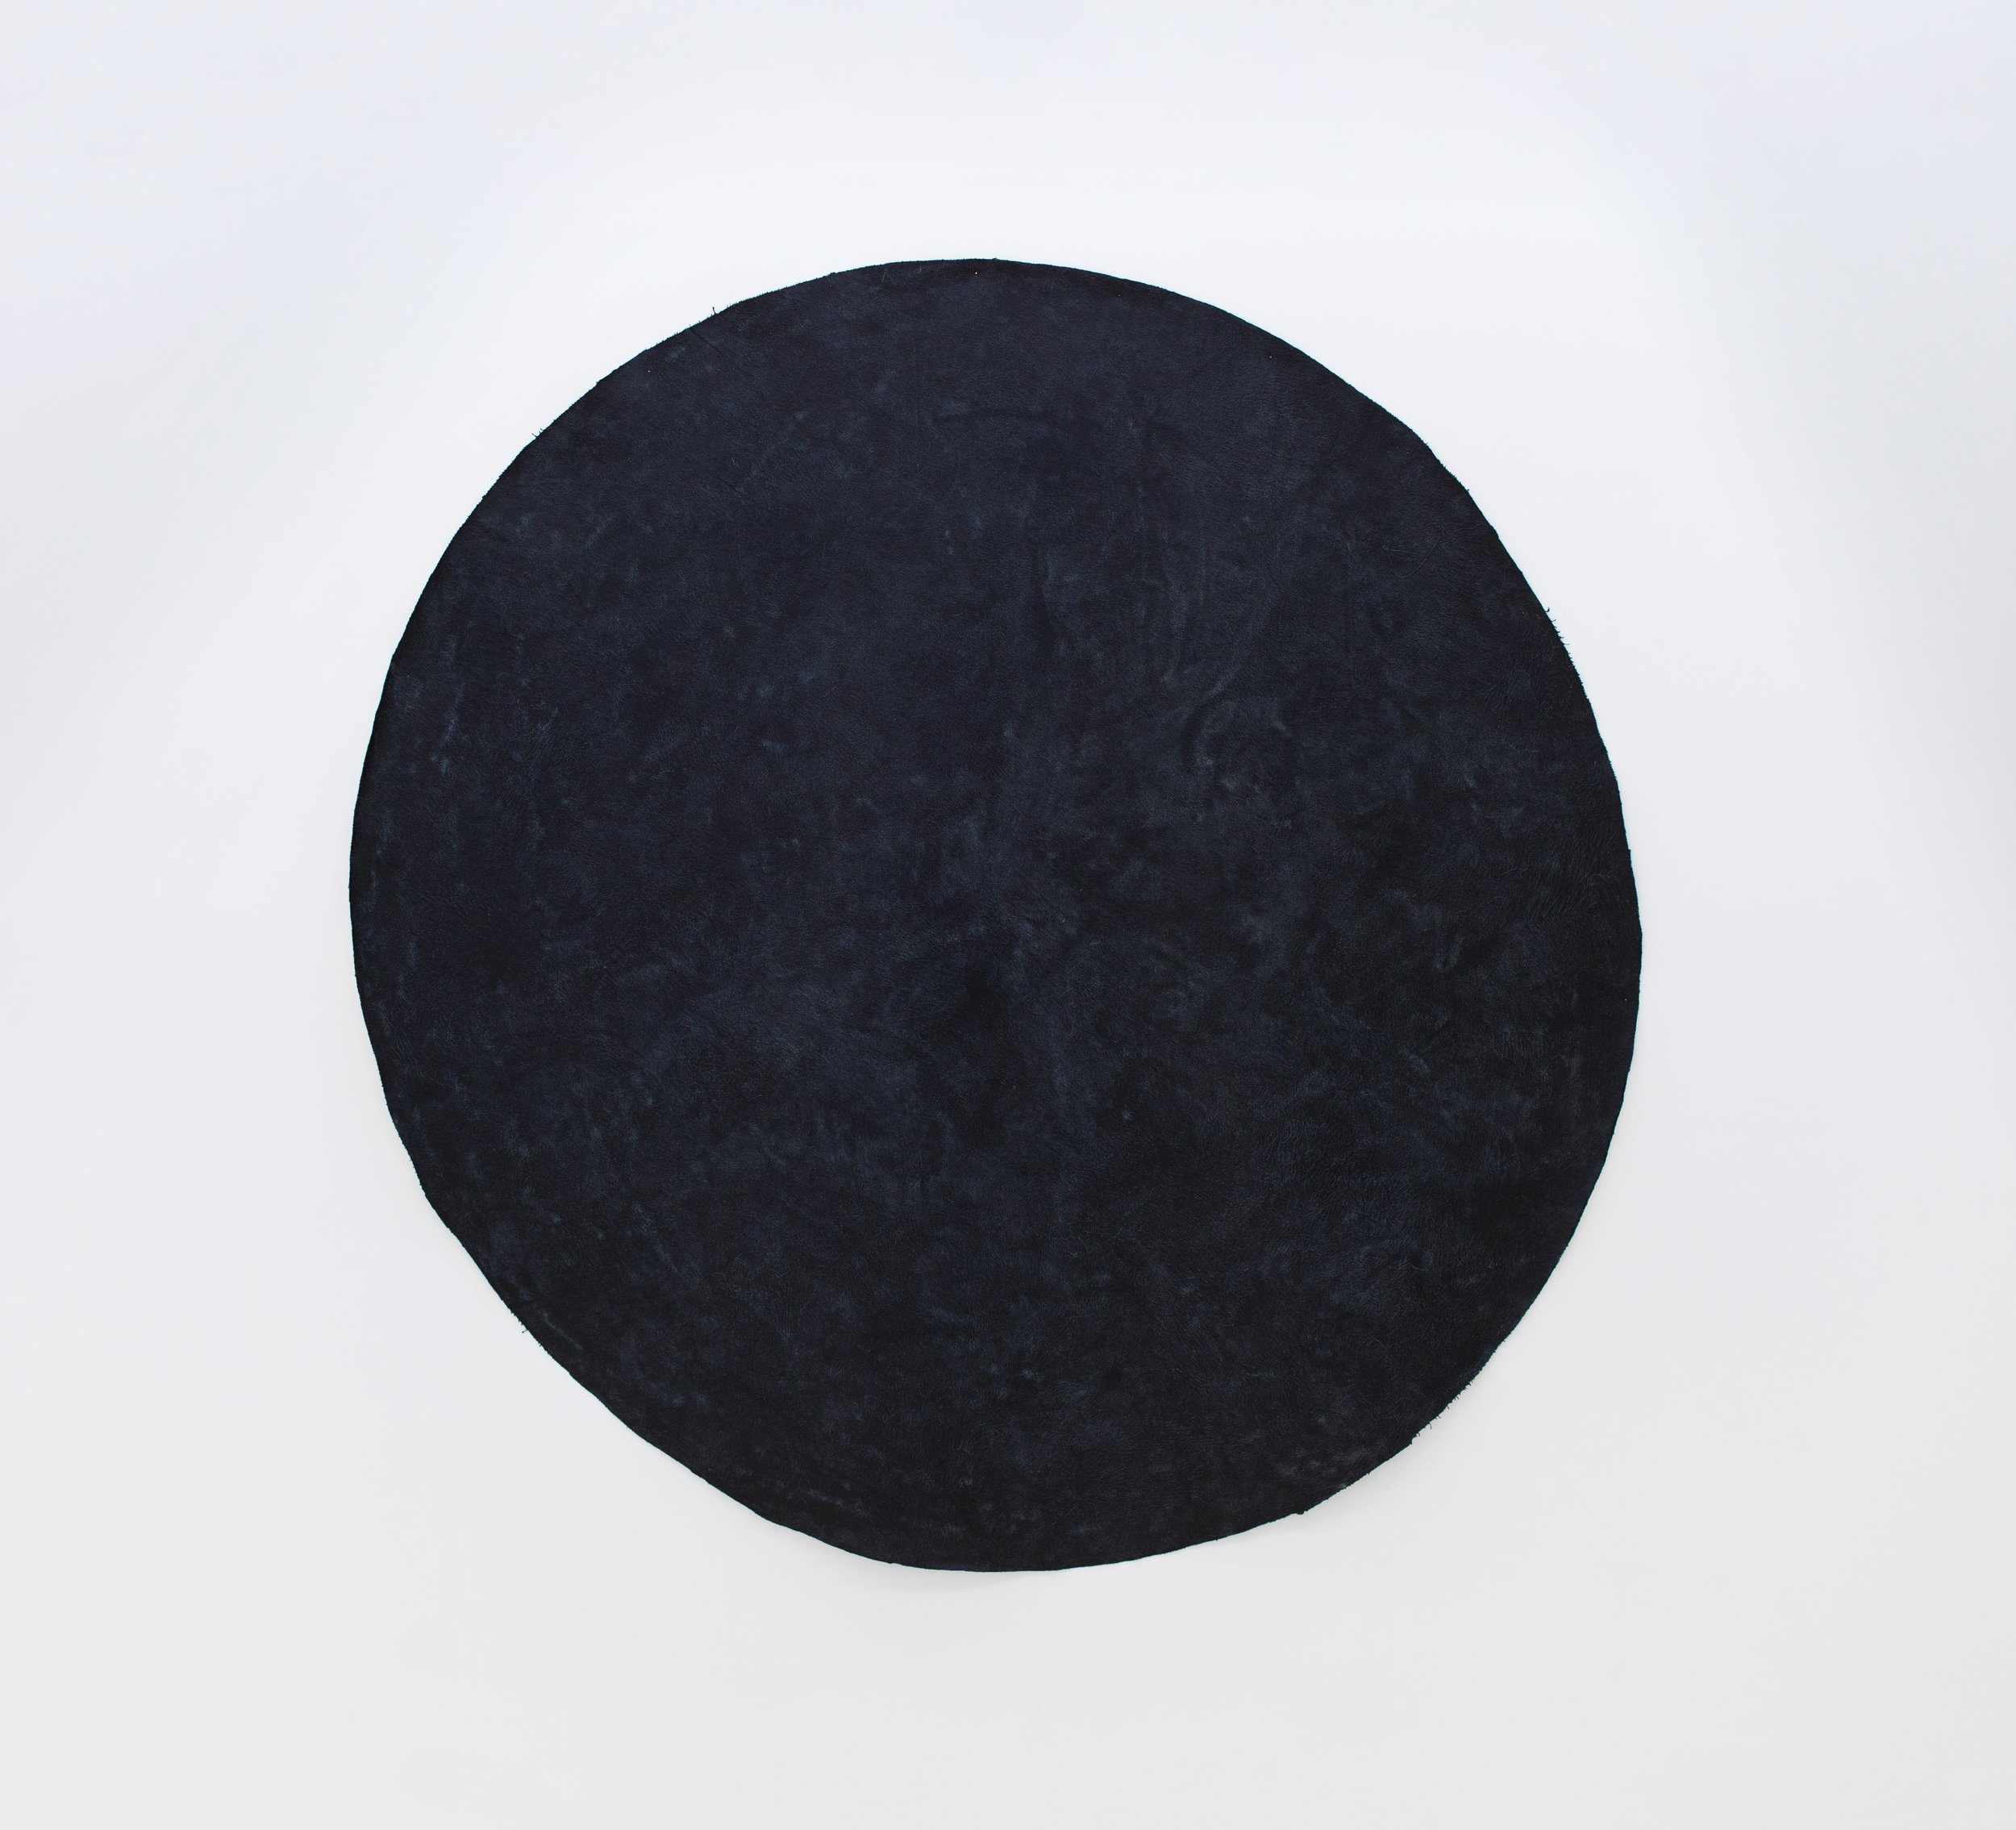 Quentin Morris   Untitled (February 2019),  2019 Silkscreen ink and acrylic on canvas 72 inches in diameter